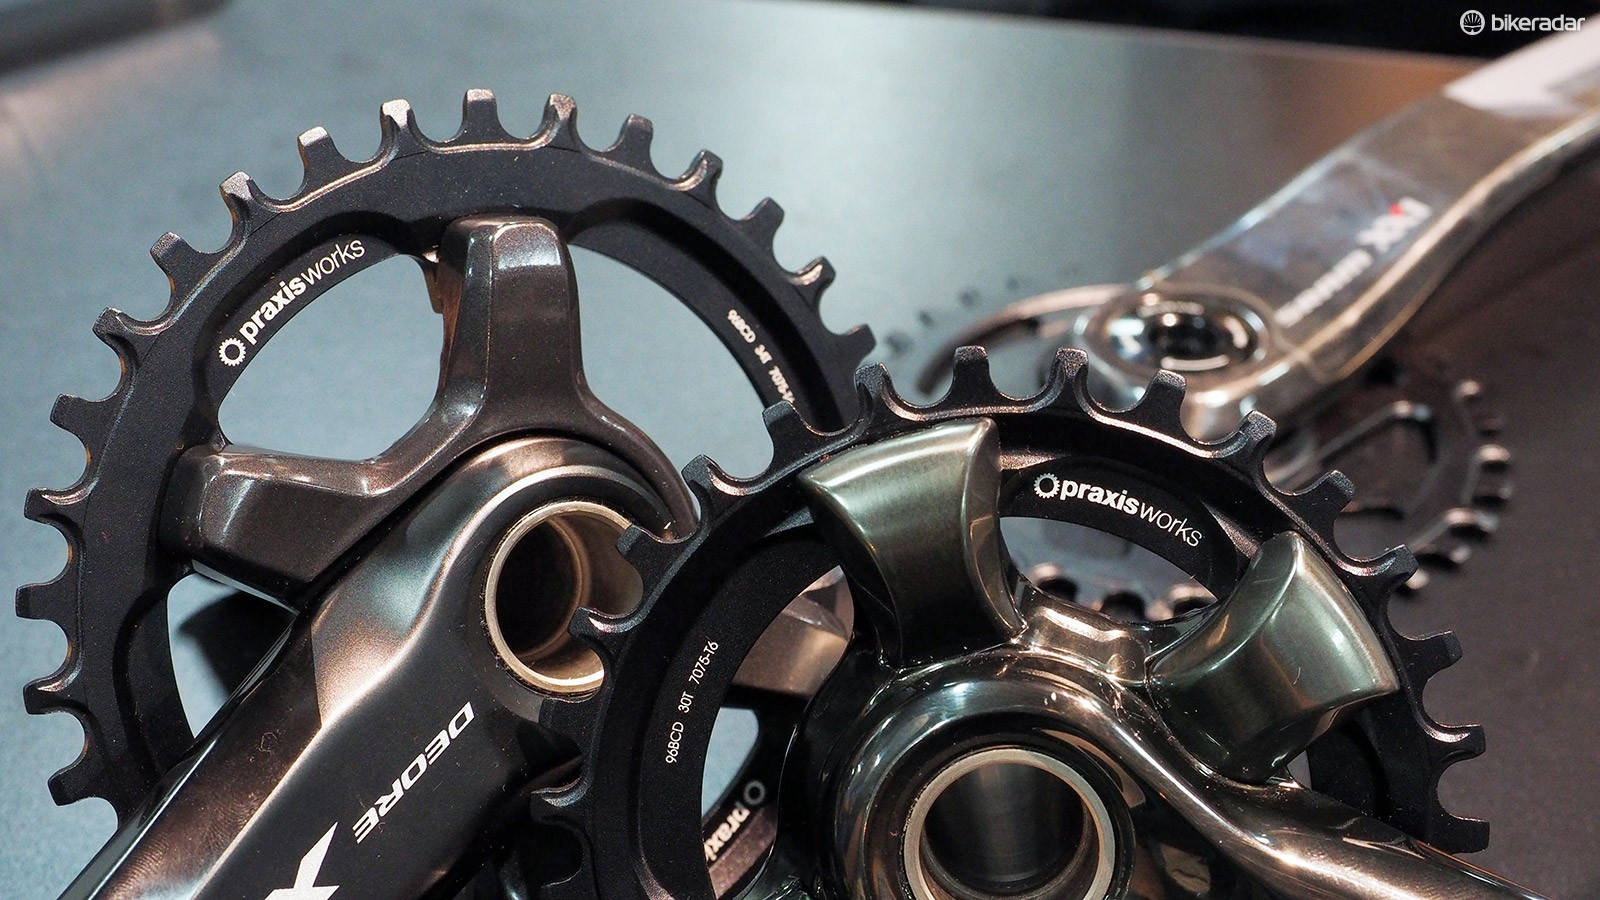 Praxis has added new 1x-specific narrow/wide chainrings to fit the latest Shimano XT and XTR crankarms